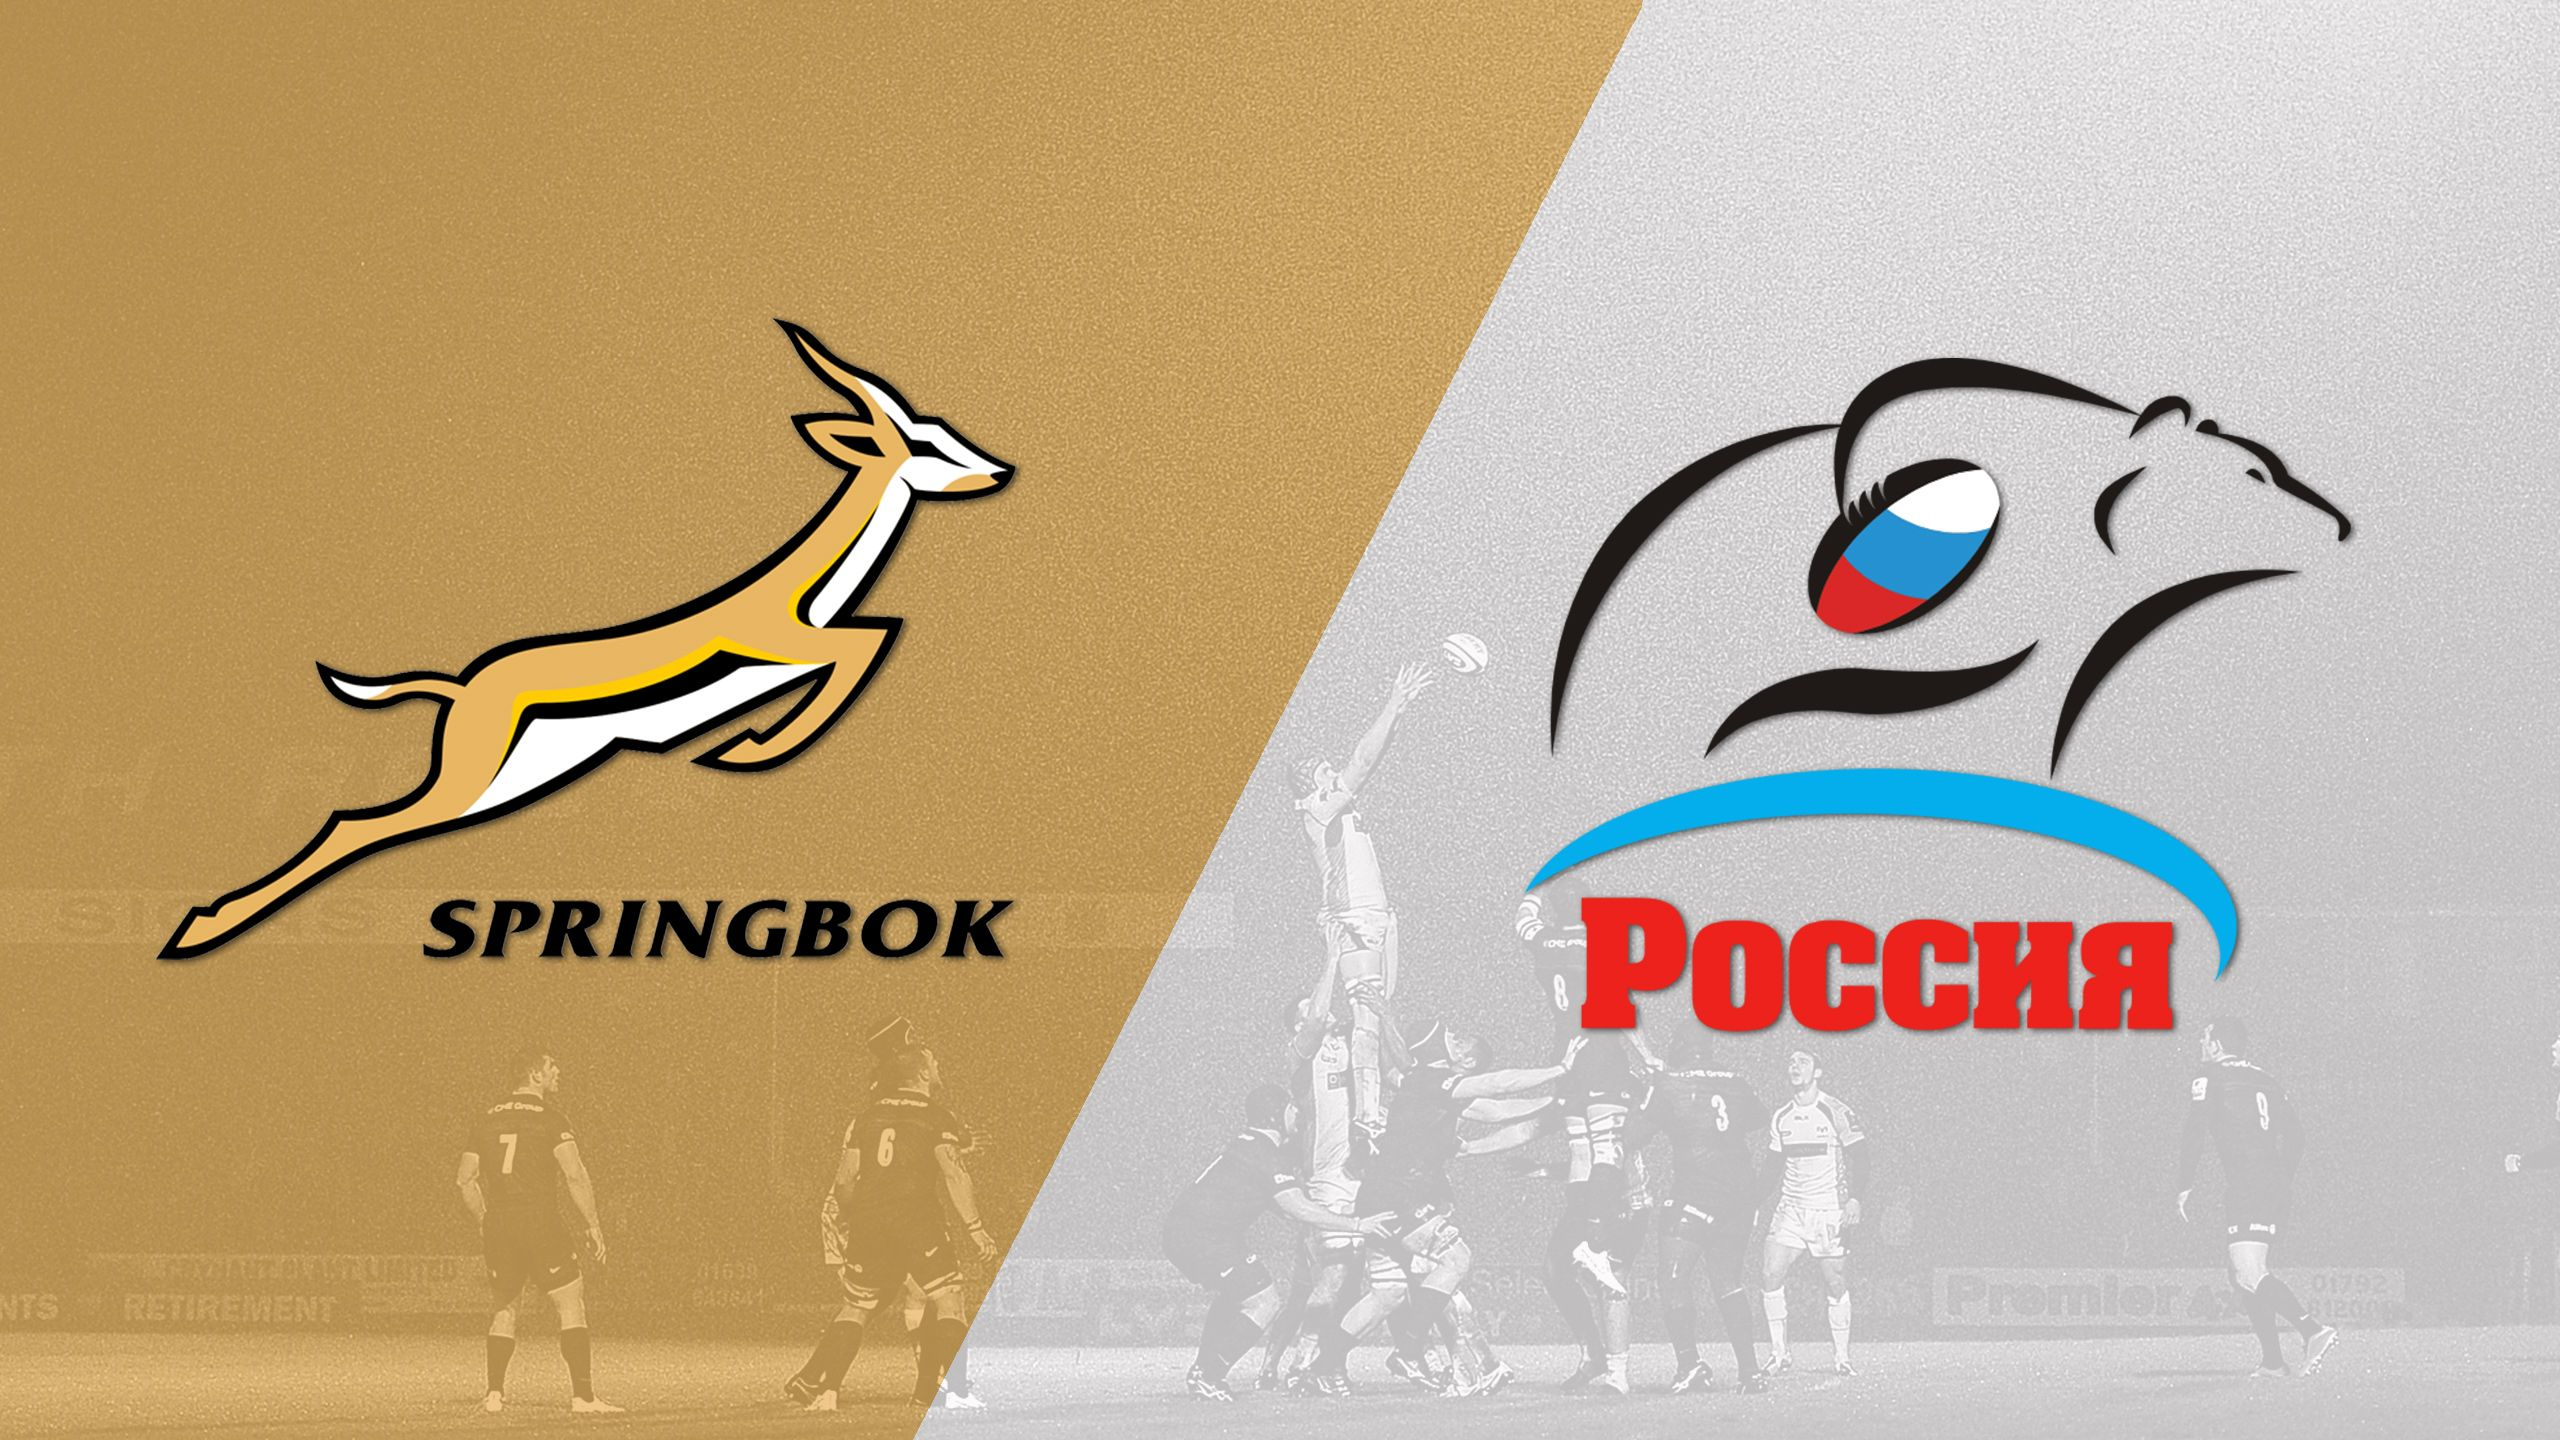 South Africa vs. Russia (World Rugby Sevens Series)